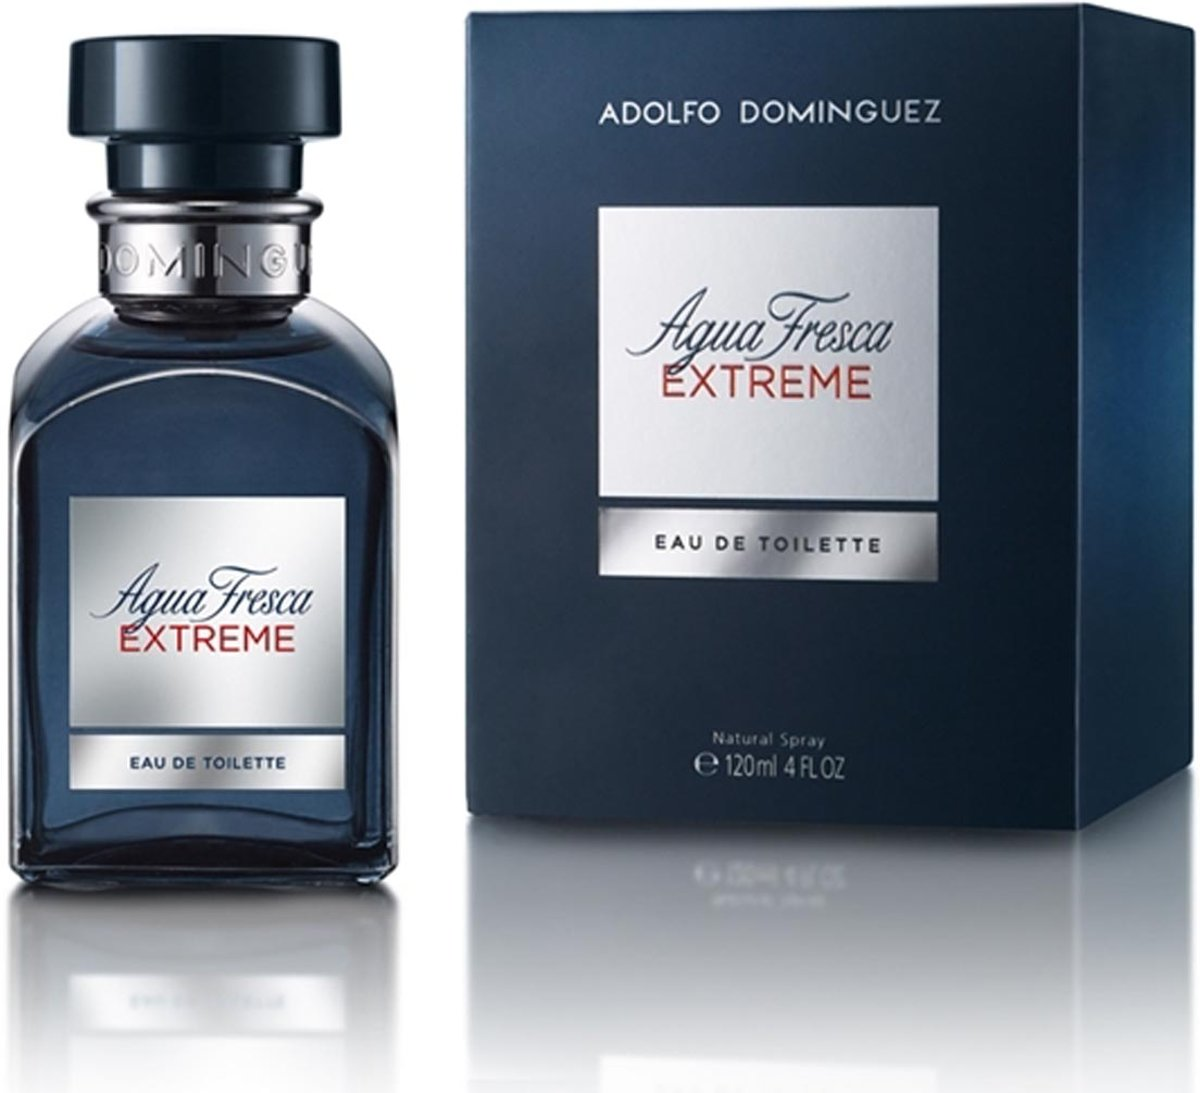 MULTI BUNDEL 3 stuks Adolfo Dominguez Agua Fresca Extreme Eau De Toilette Spray 230ml